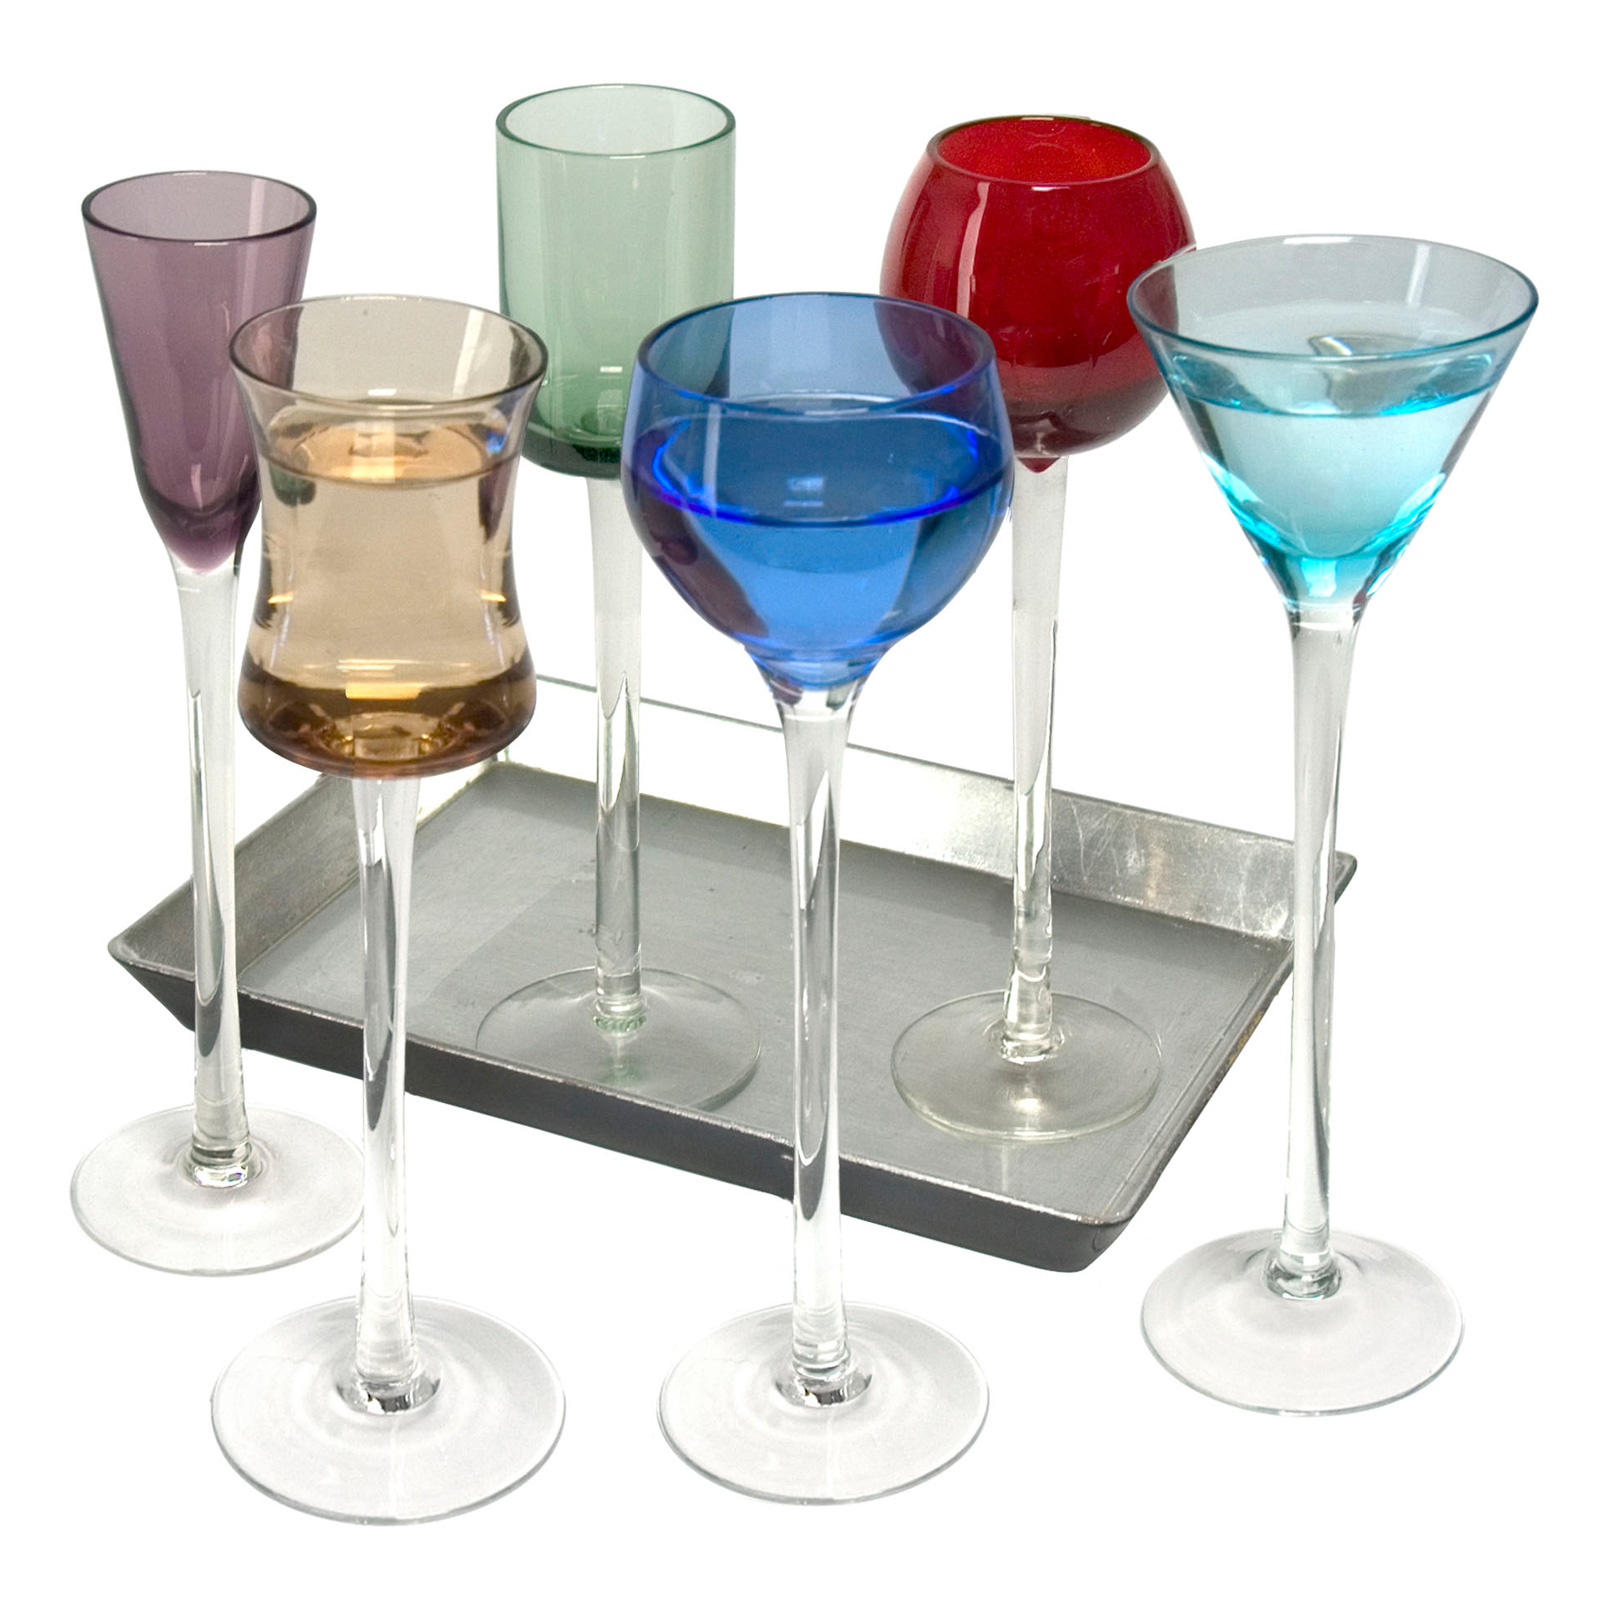 7 Piece Long Stem Liqueur Set by Artland